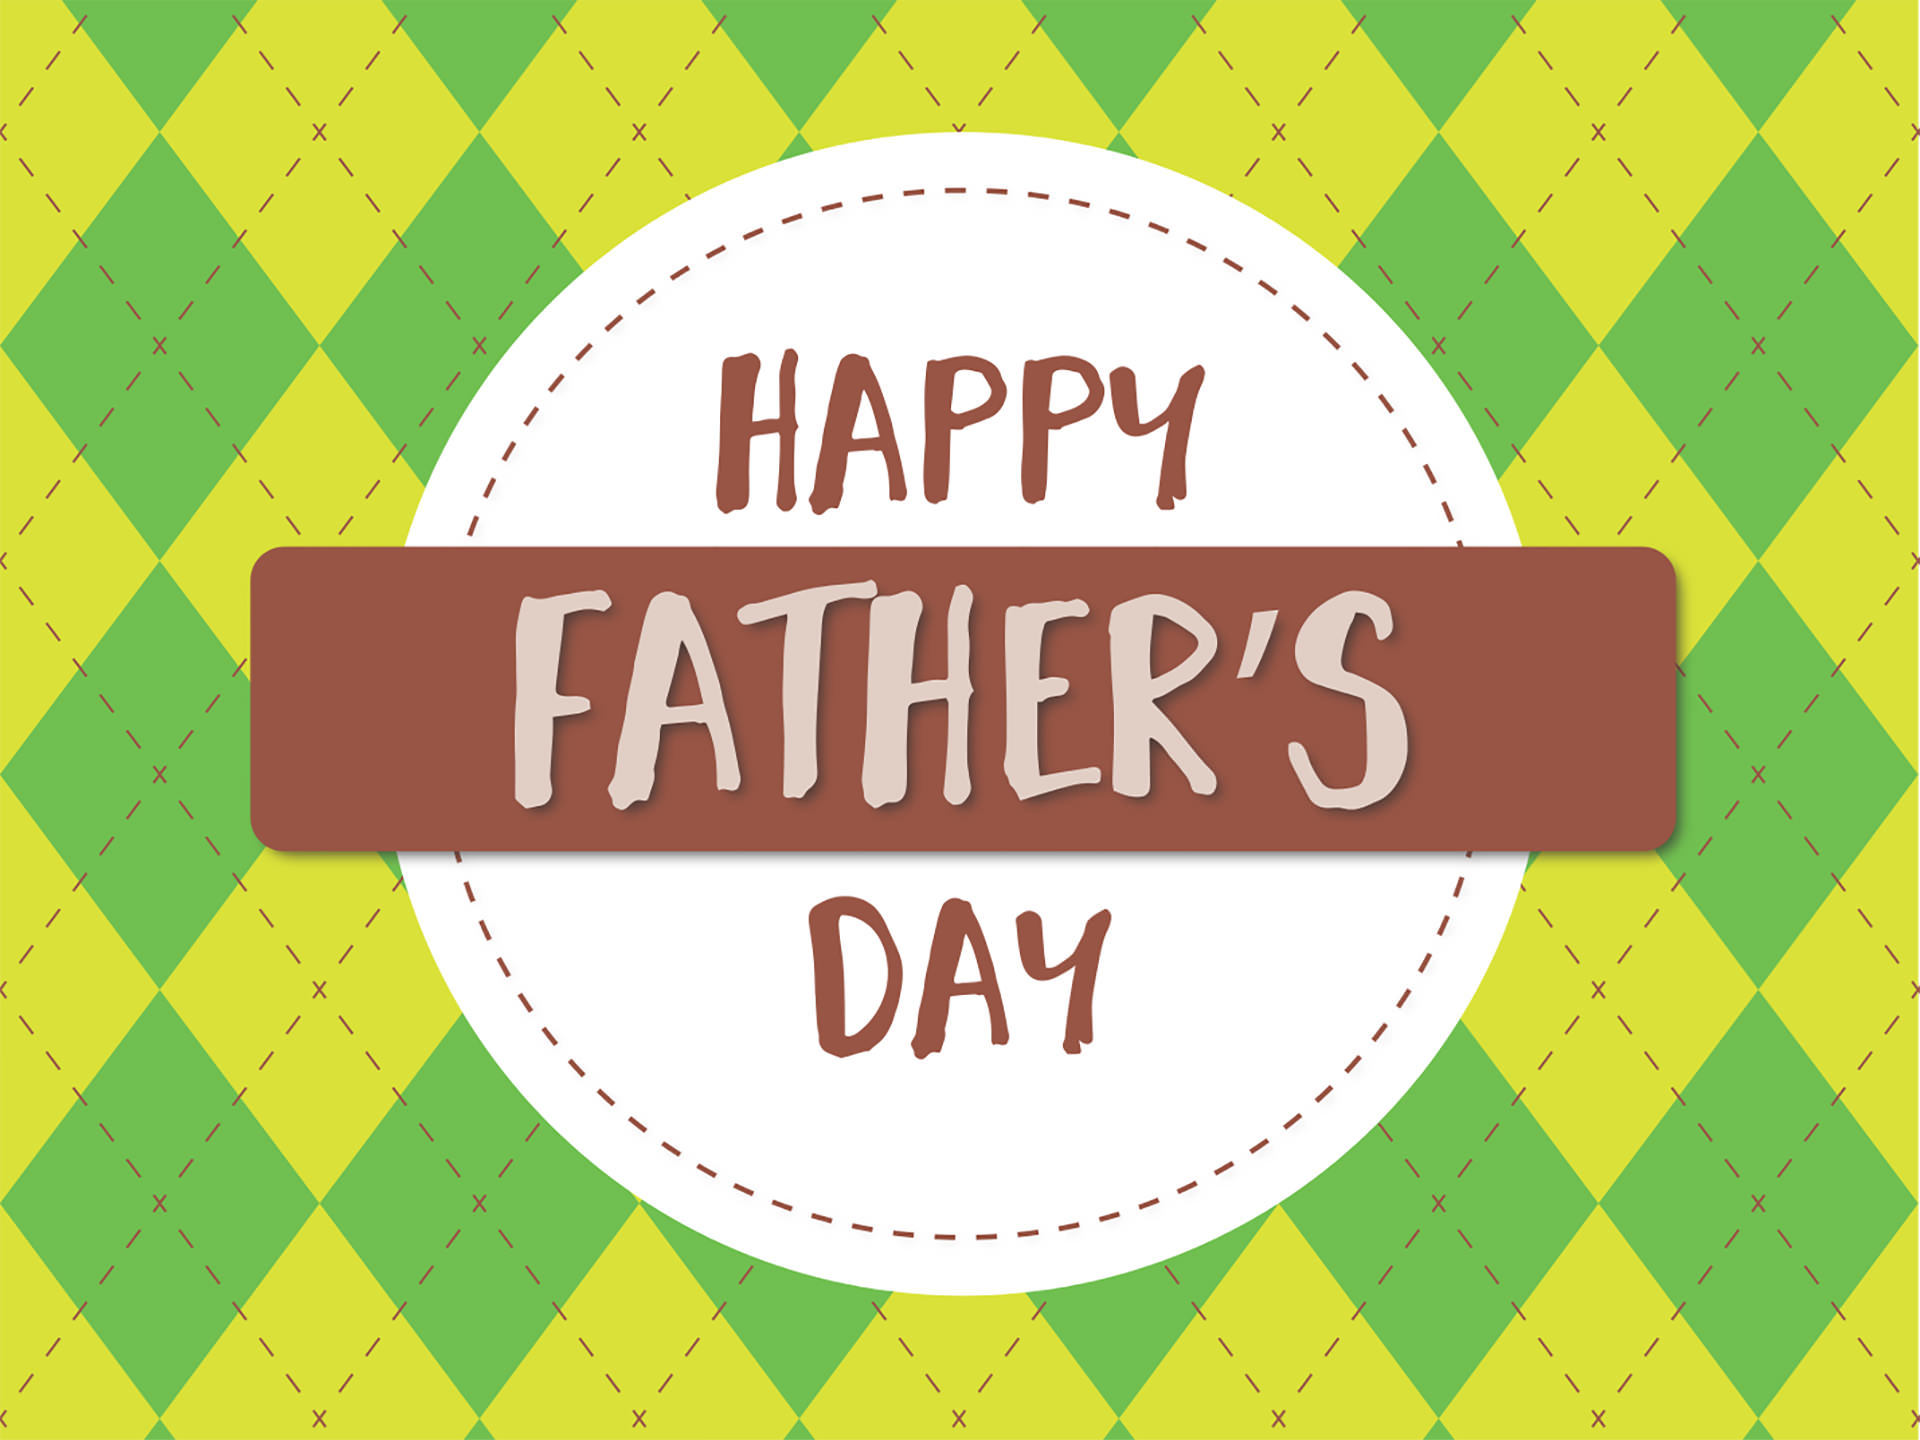 100 Happy Fathers Day 2019 Images Photos Pictures HD Wallpapers 1920x1440